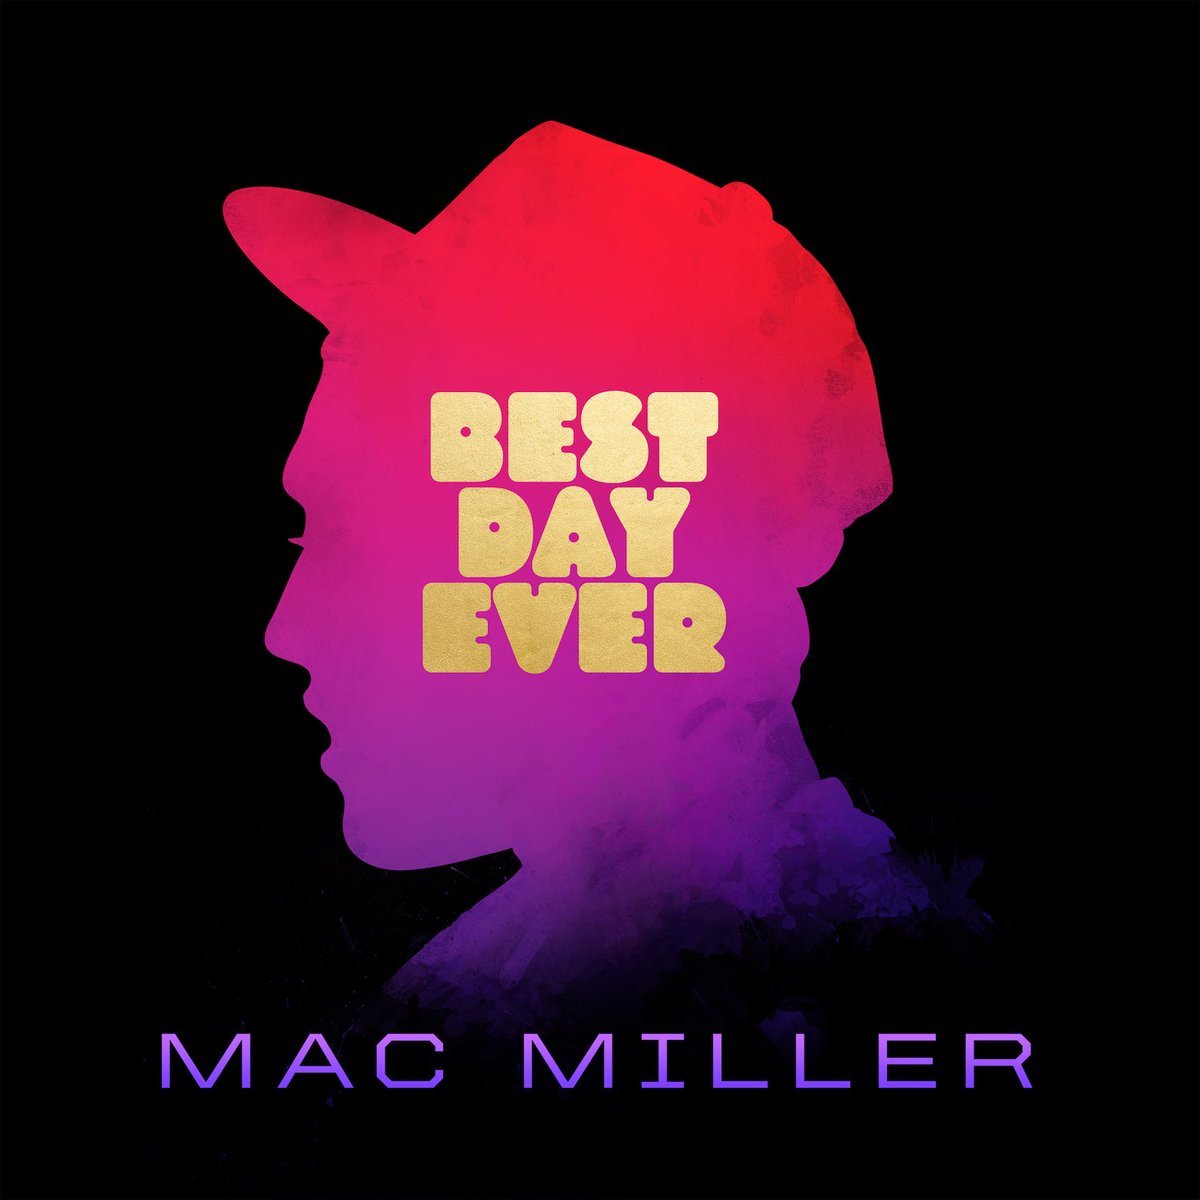 """@MacMiller's #BestDayEver to get commercial release for 5th Anniversary"" - @theSTASHED https://t.co/EQVjMh5VcX https://t.co/eMdUlU2l25"